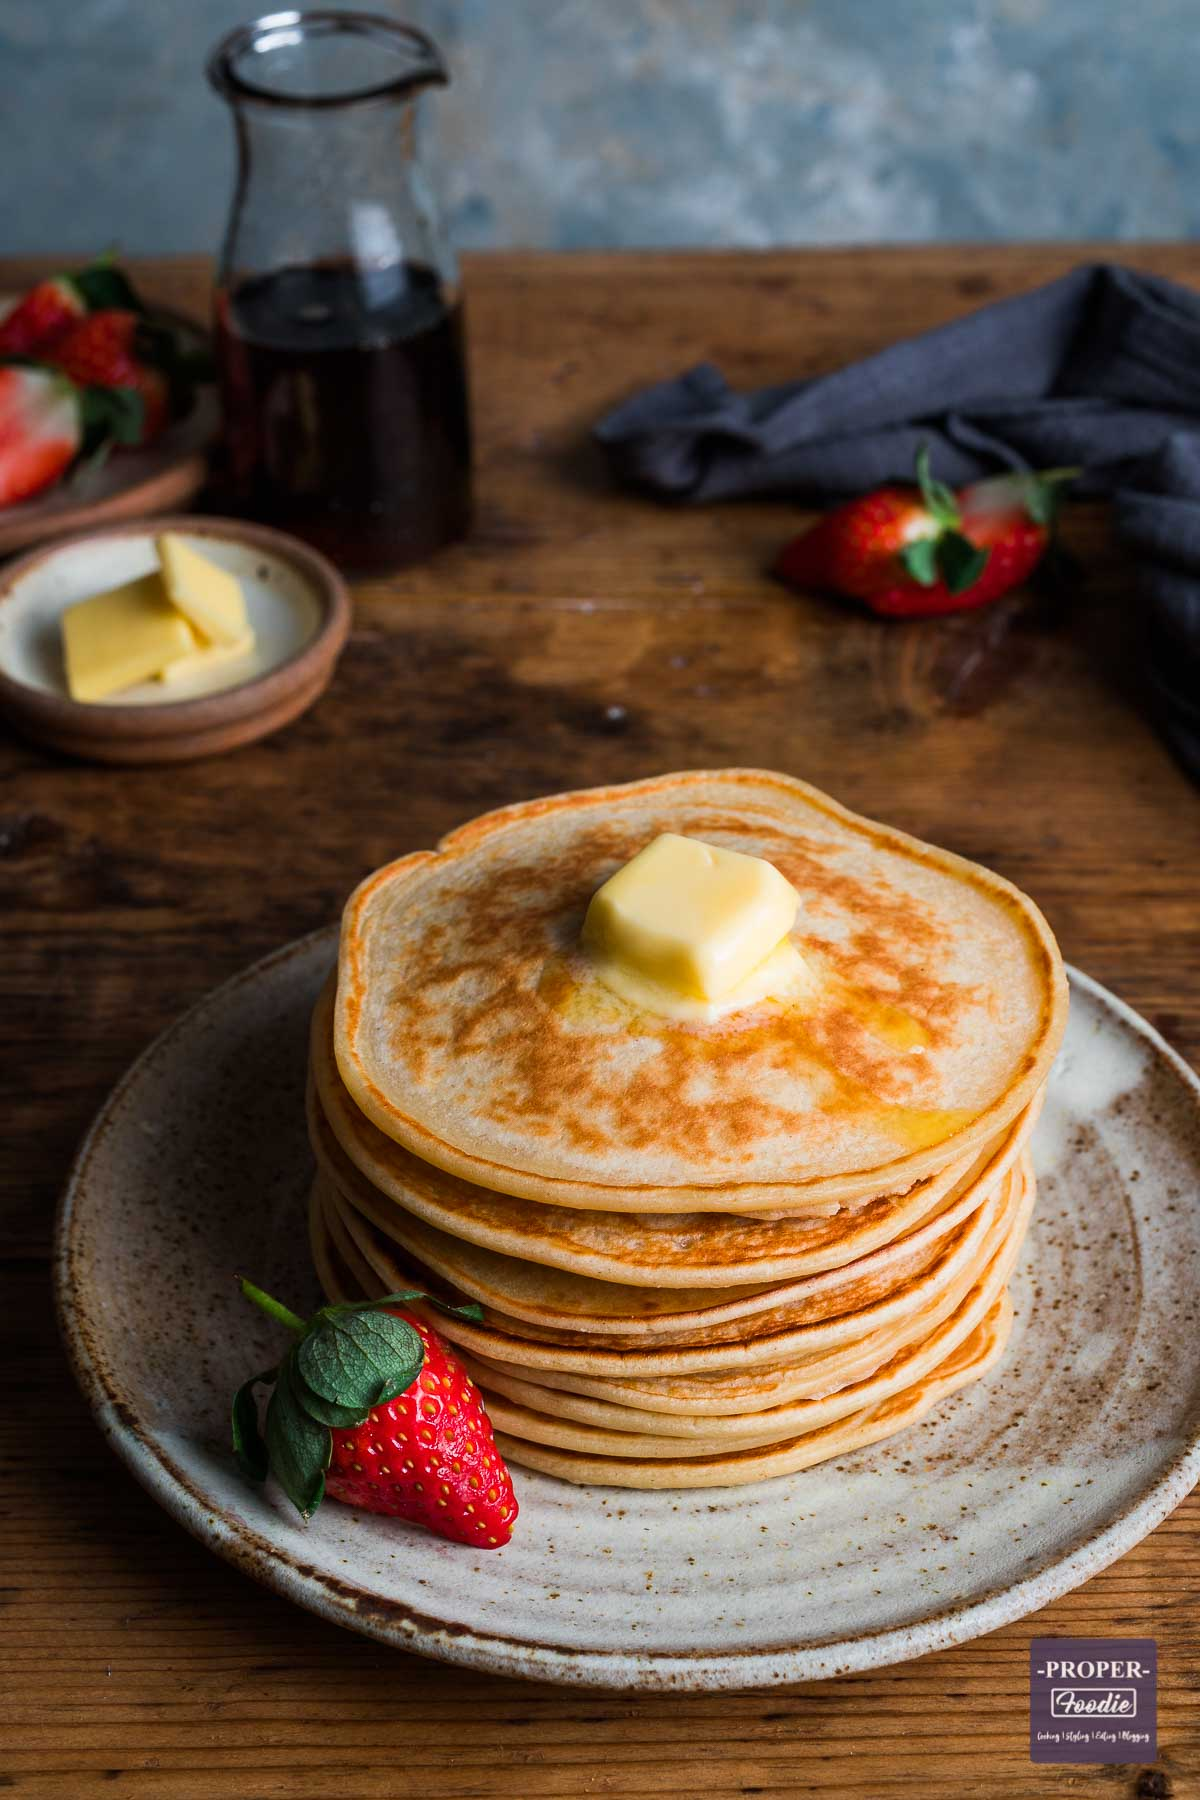 A stack of pancakes on a small plate with butter melting on the top and a small glass jug of syrup in the background.